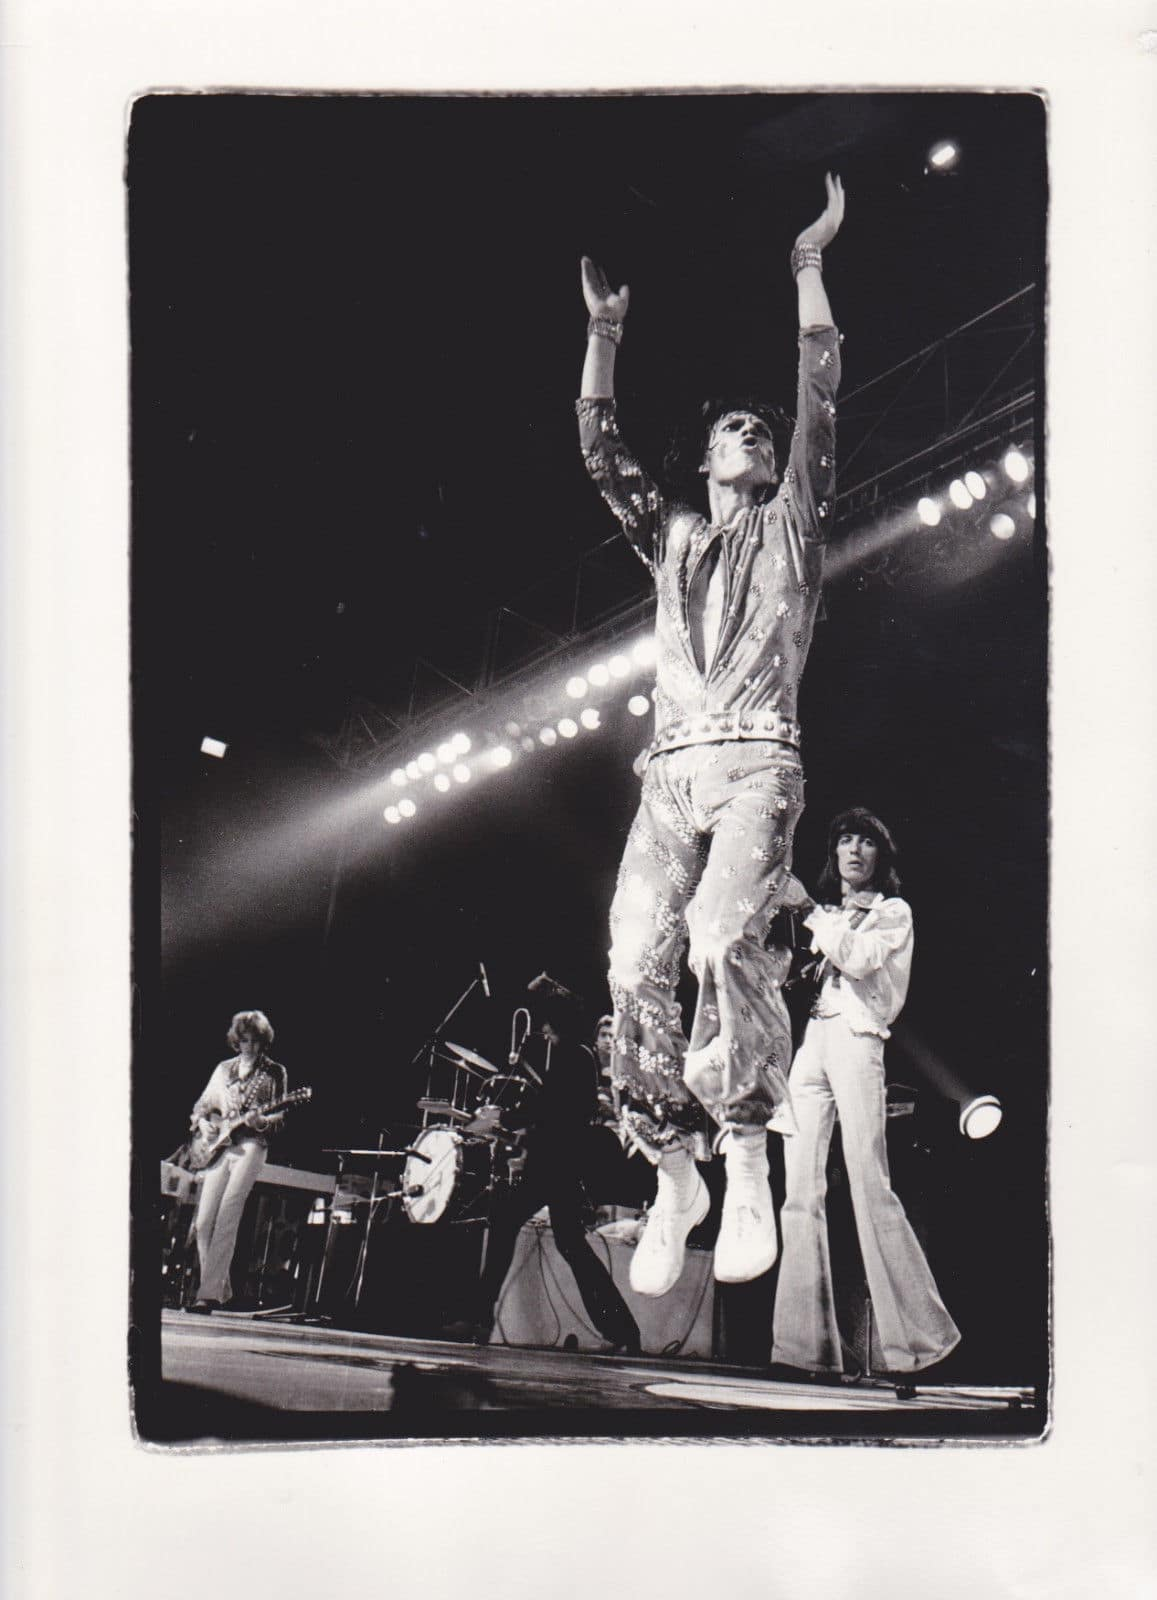 Rolling Stones – 1973 Michael Putland Live Photograph, From